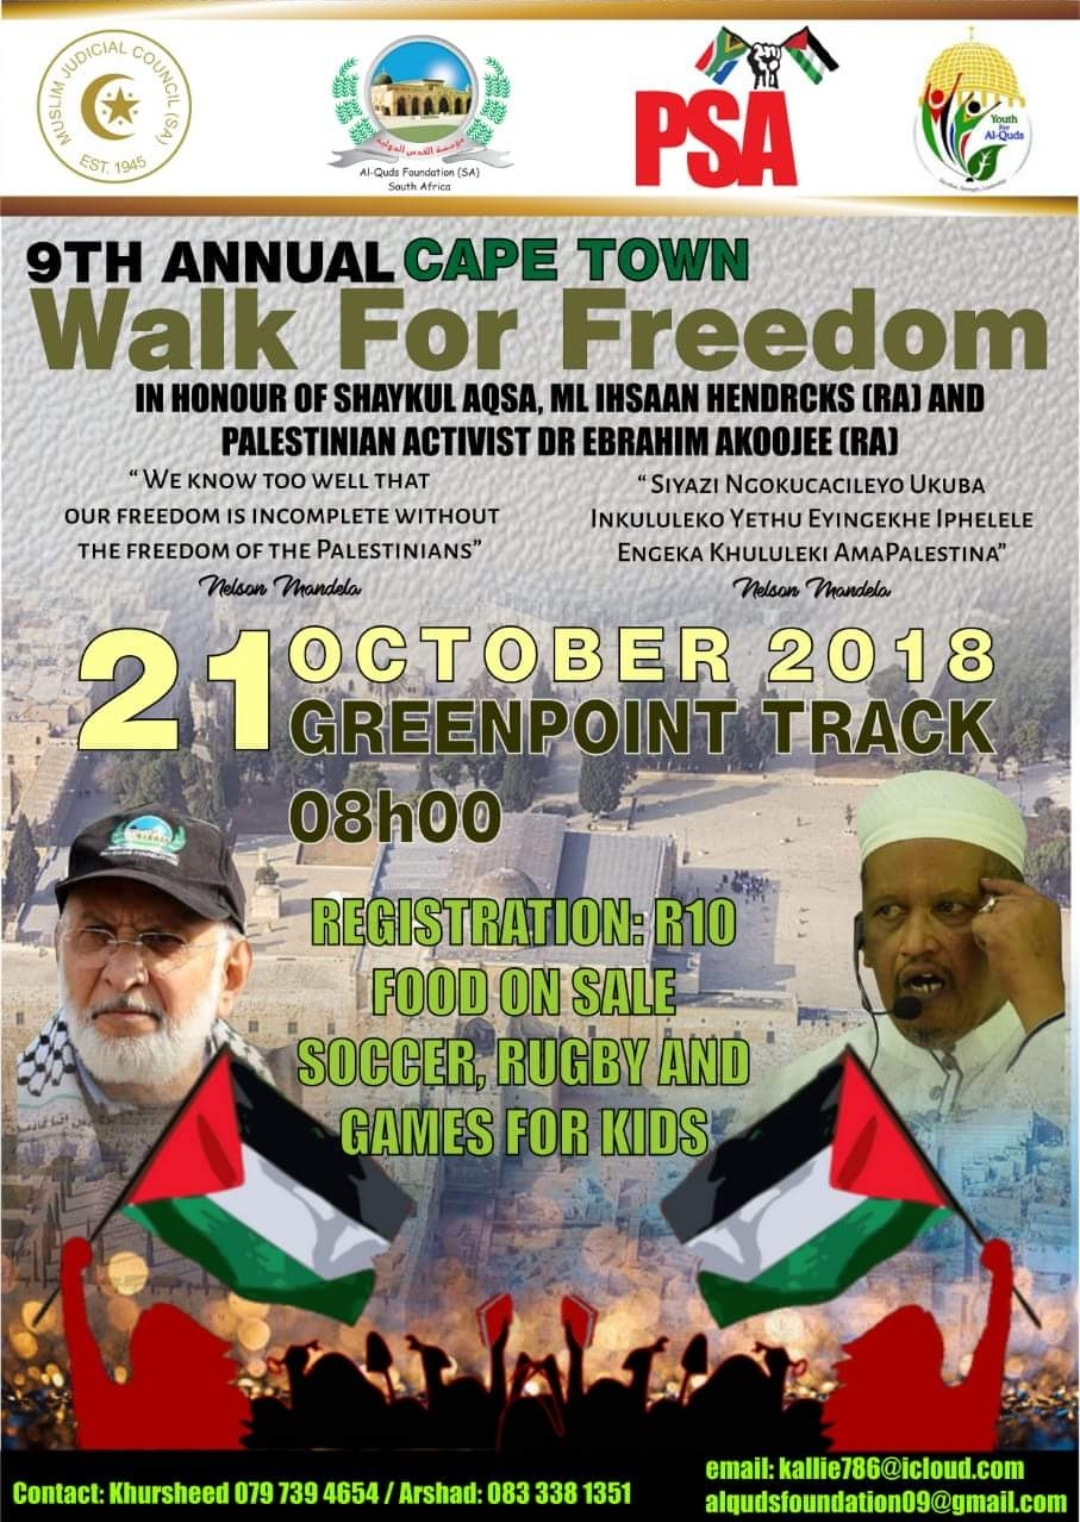 9th Cape Town Walk For Freedom honours Moulana Ihsaan Hendricks news - Screenshot 20181005 200002 Pages Manager - News